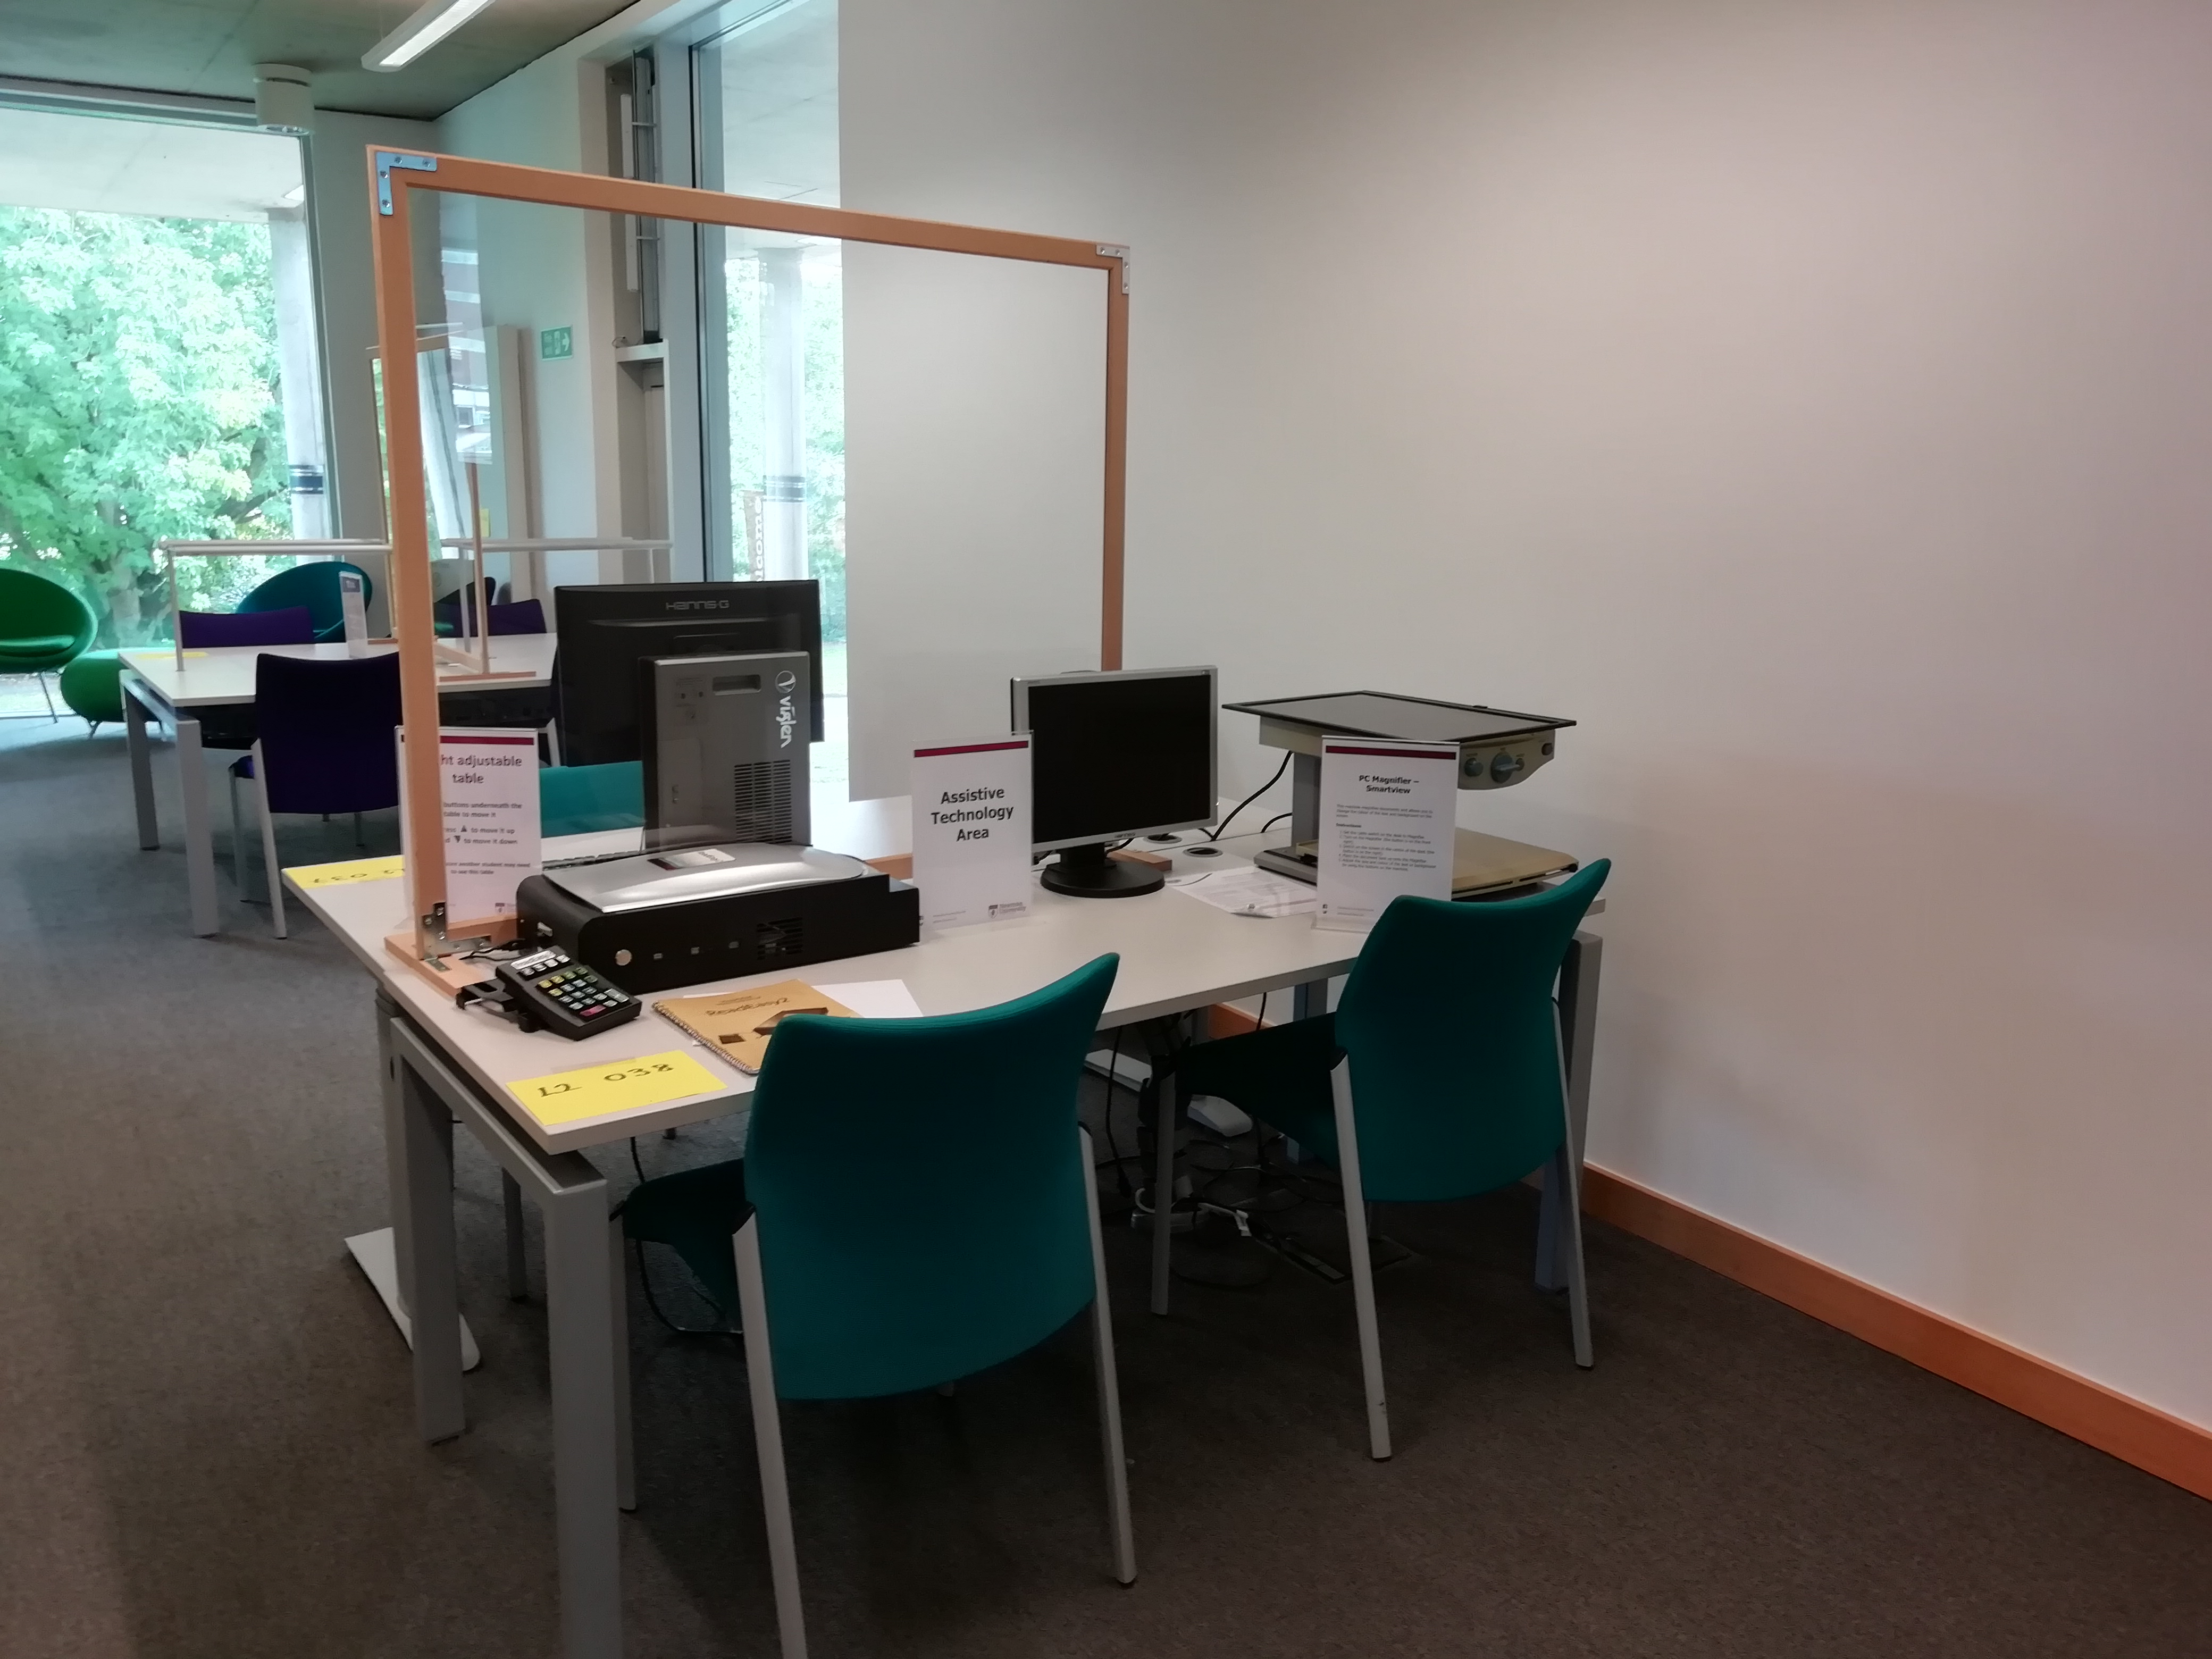 Example of individual study space with access to assistive technology